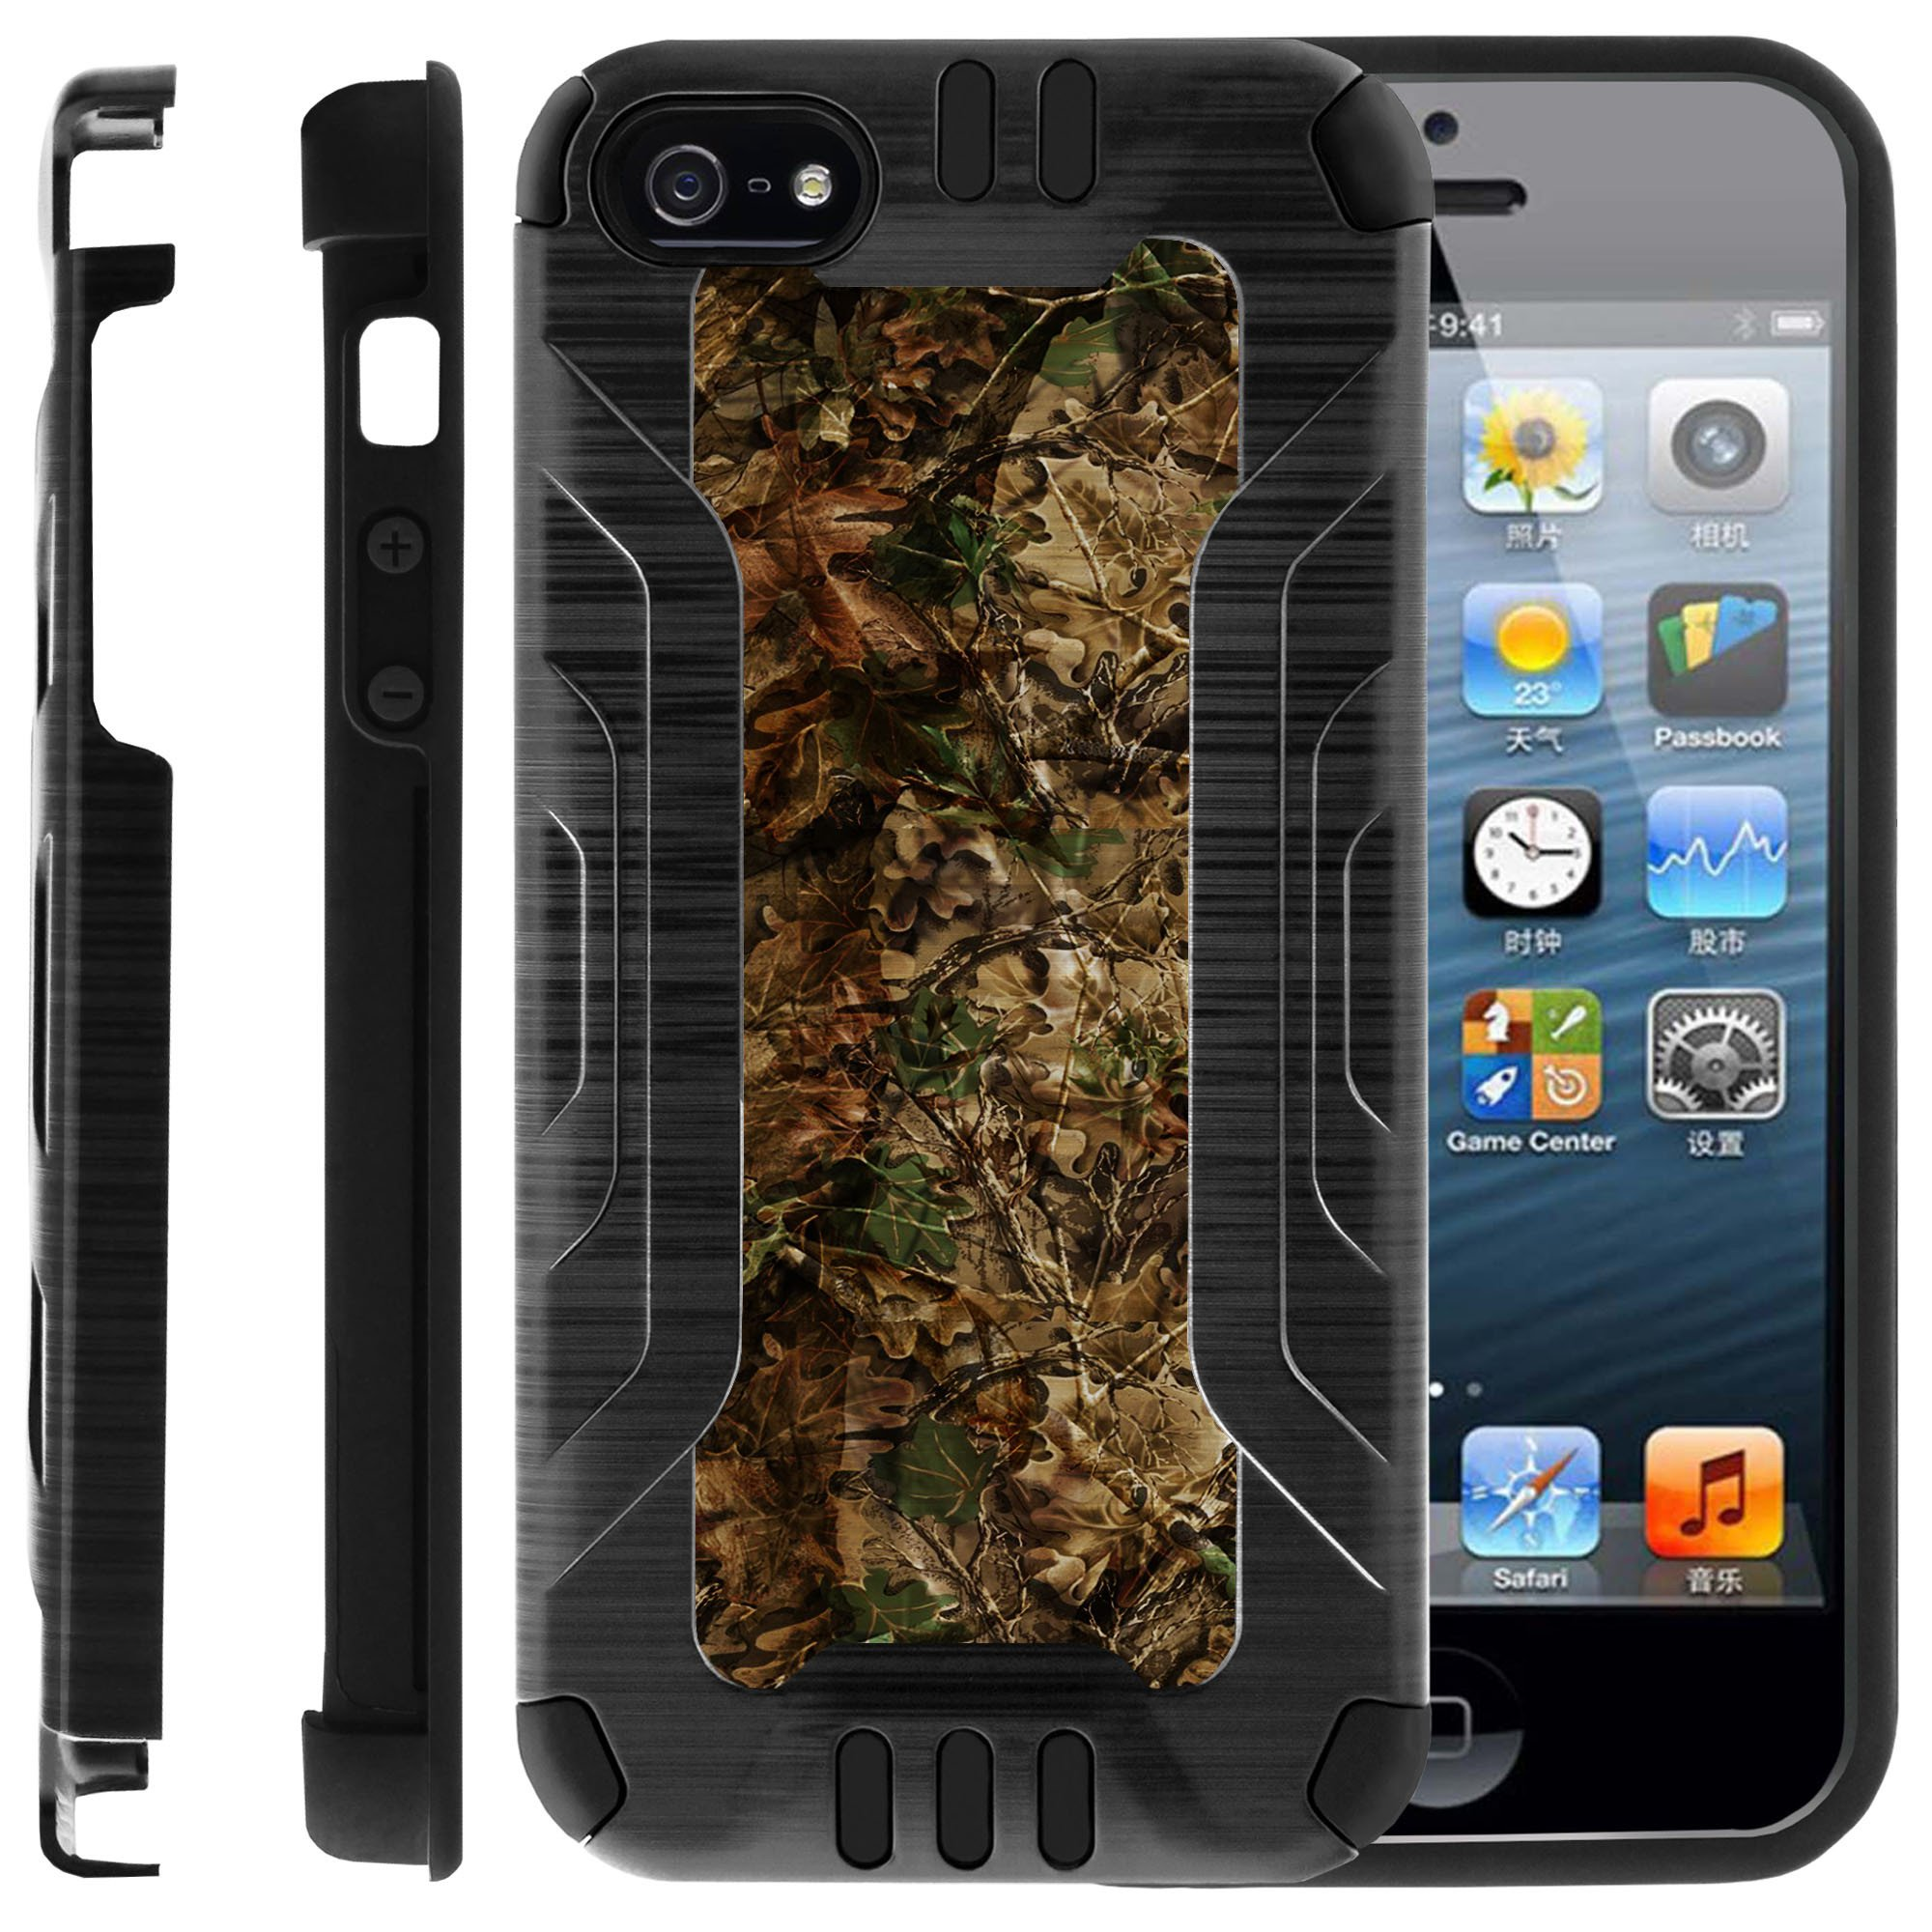 Apple iPhone 5 | 5s | SE Hybrid Case, [ PRO-Tech Shield] Brushed Metal Finish Case Dual Layer Gel and Hard Plastic Cover by MINITURTLE- Hunting Leaves Camo